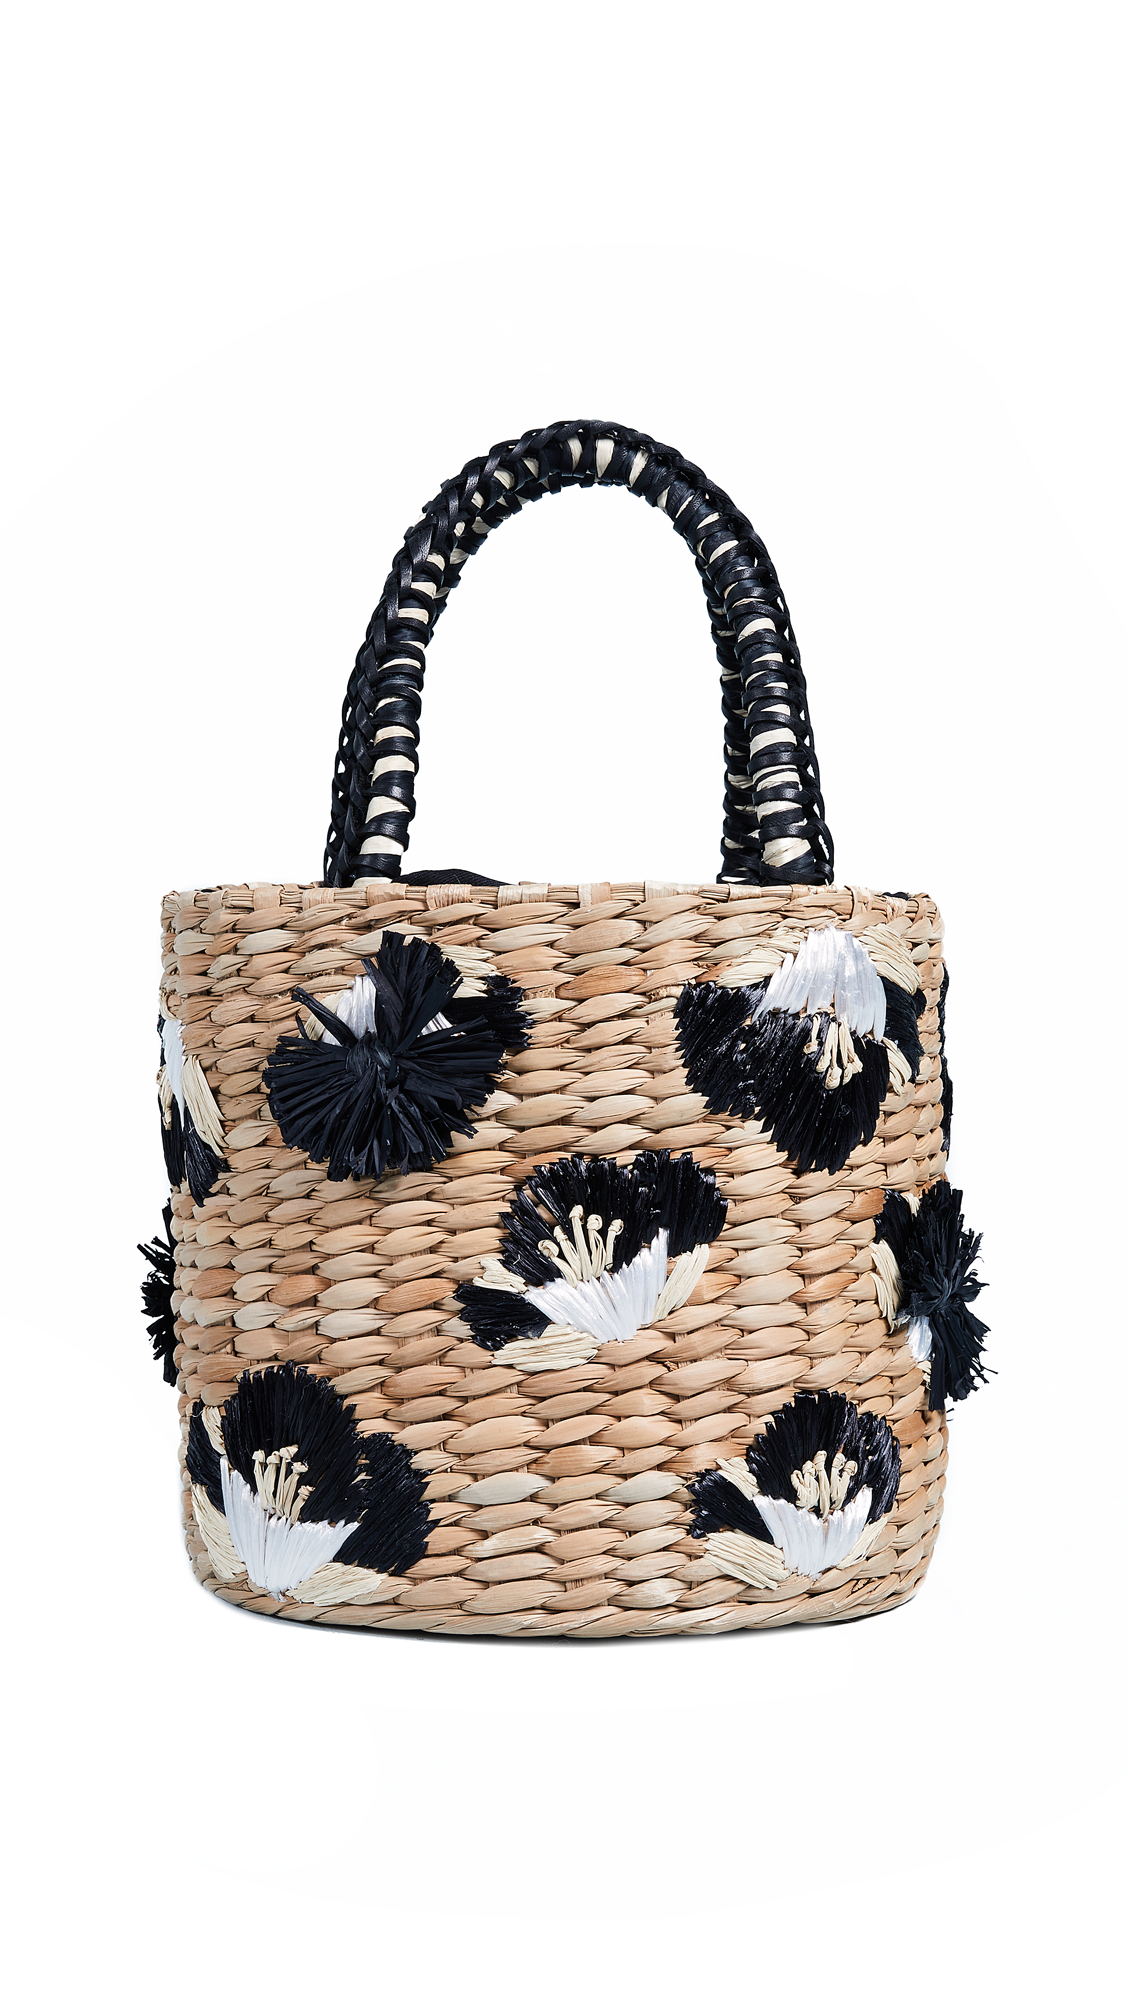 woven-bags-and-accessories-2018-bucket1